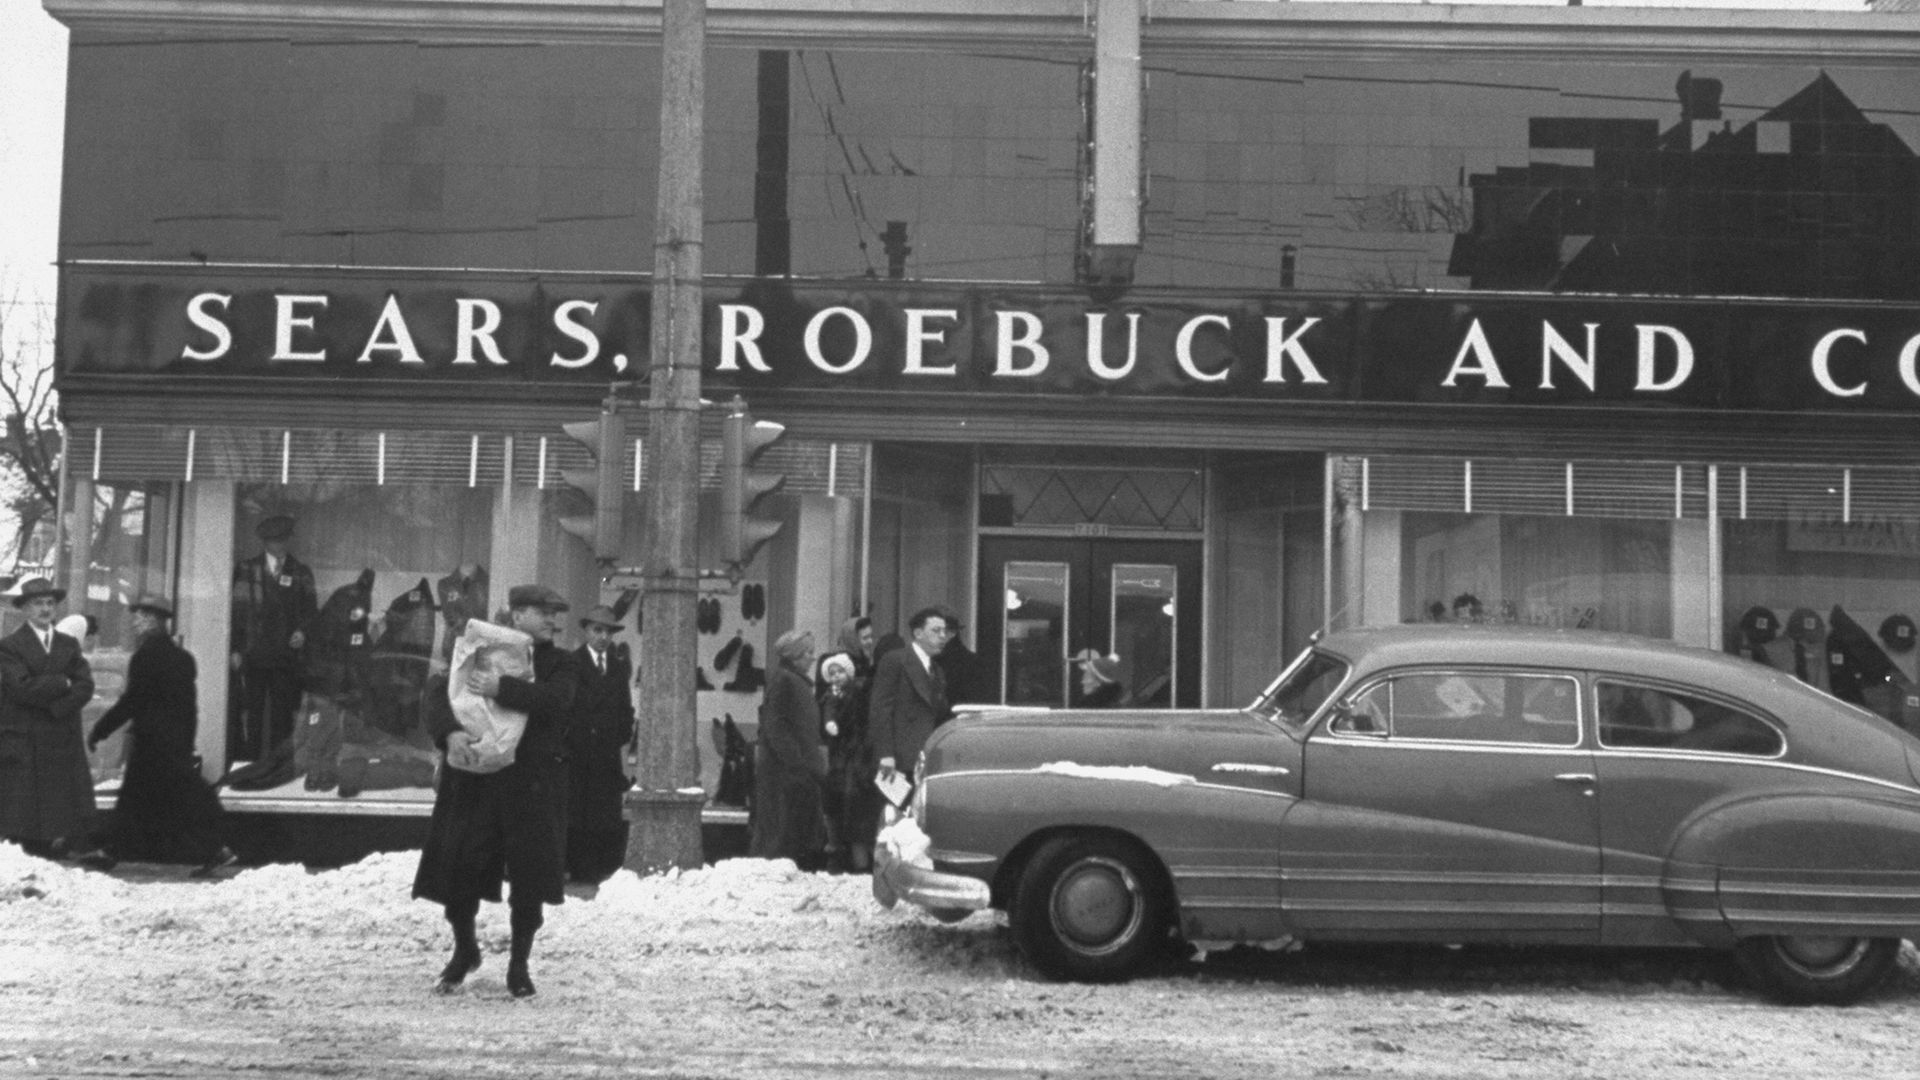 Black and white photo of Sears storefront in 1943